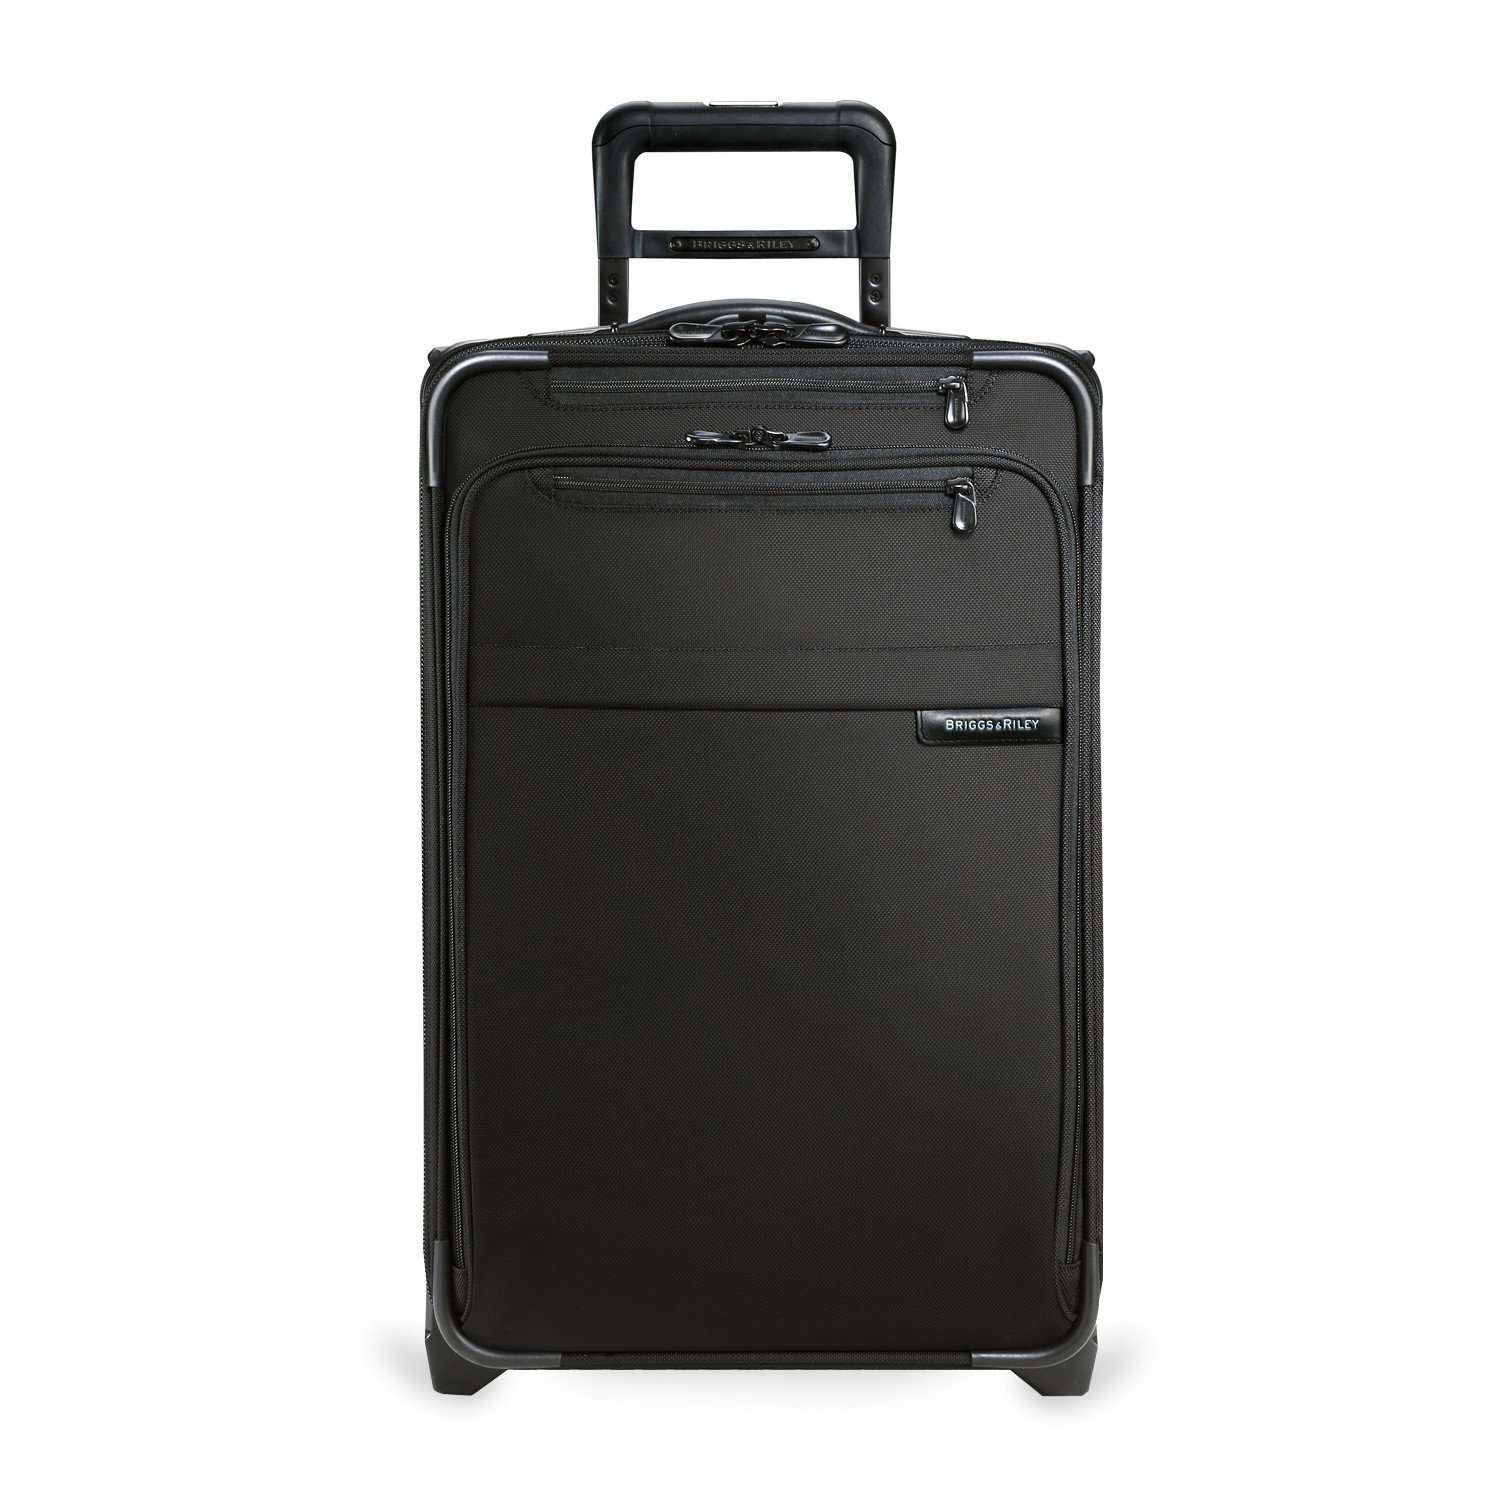 Best Carry-on Luggage for Consultants